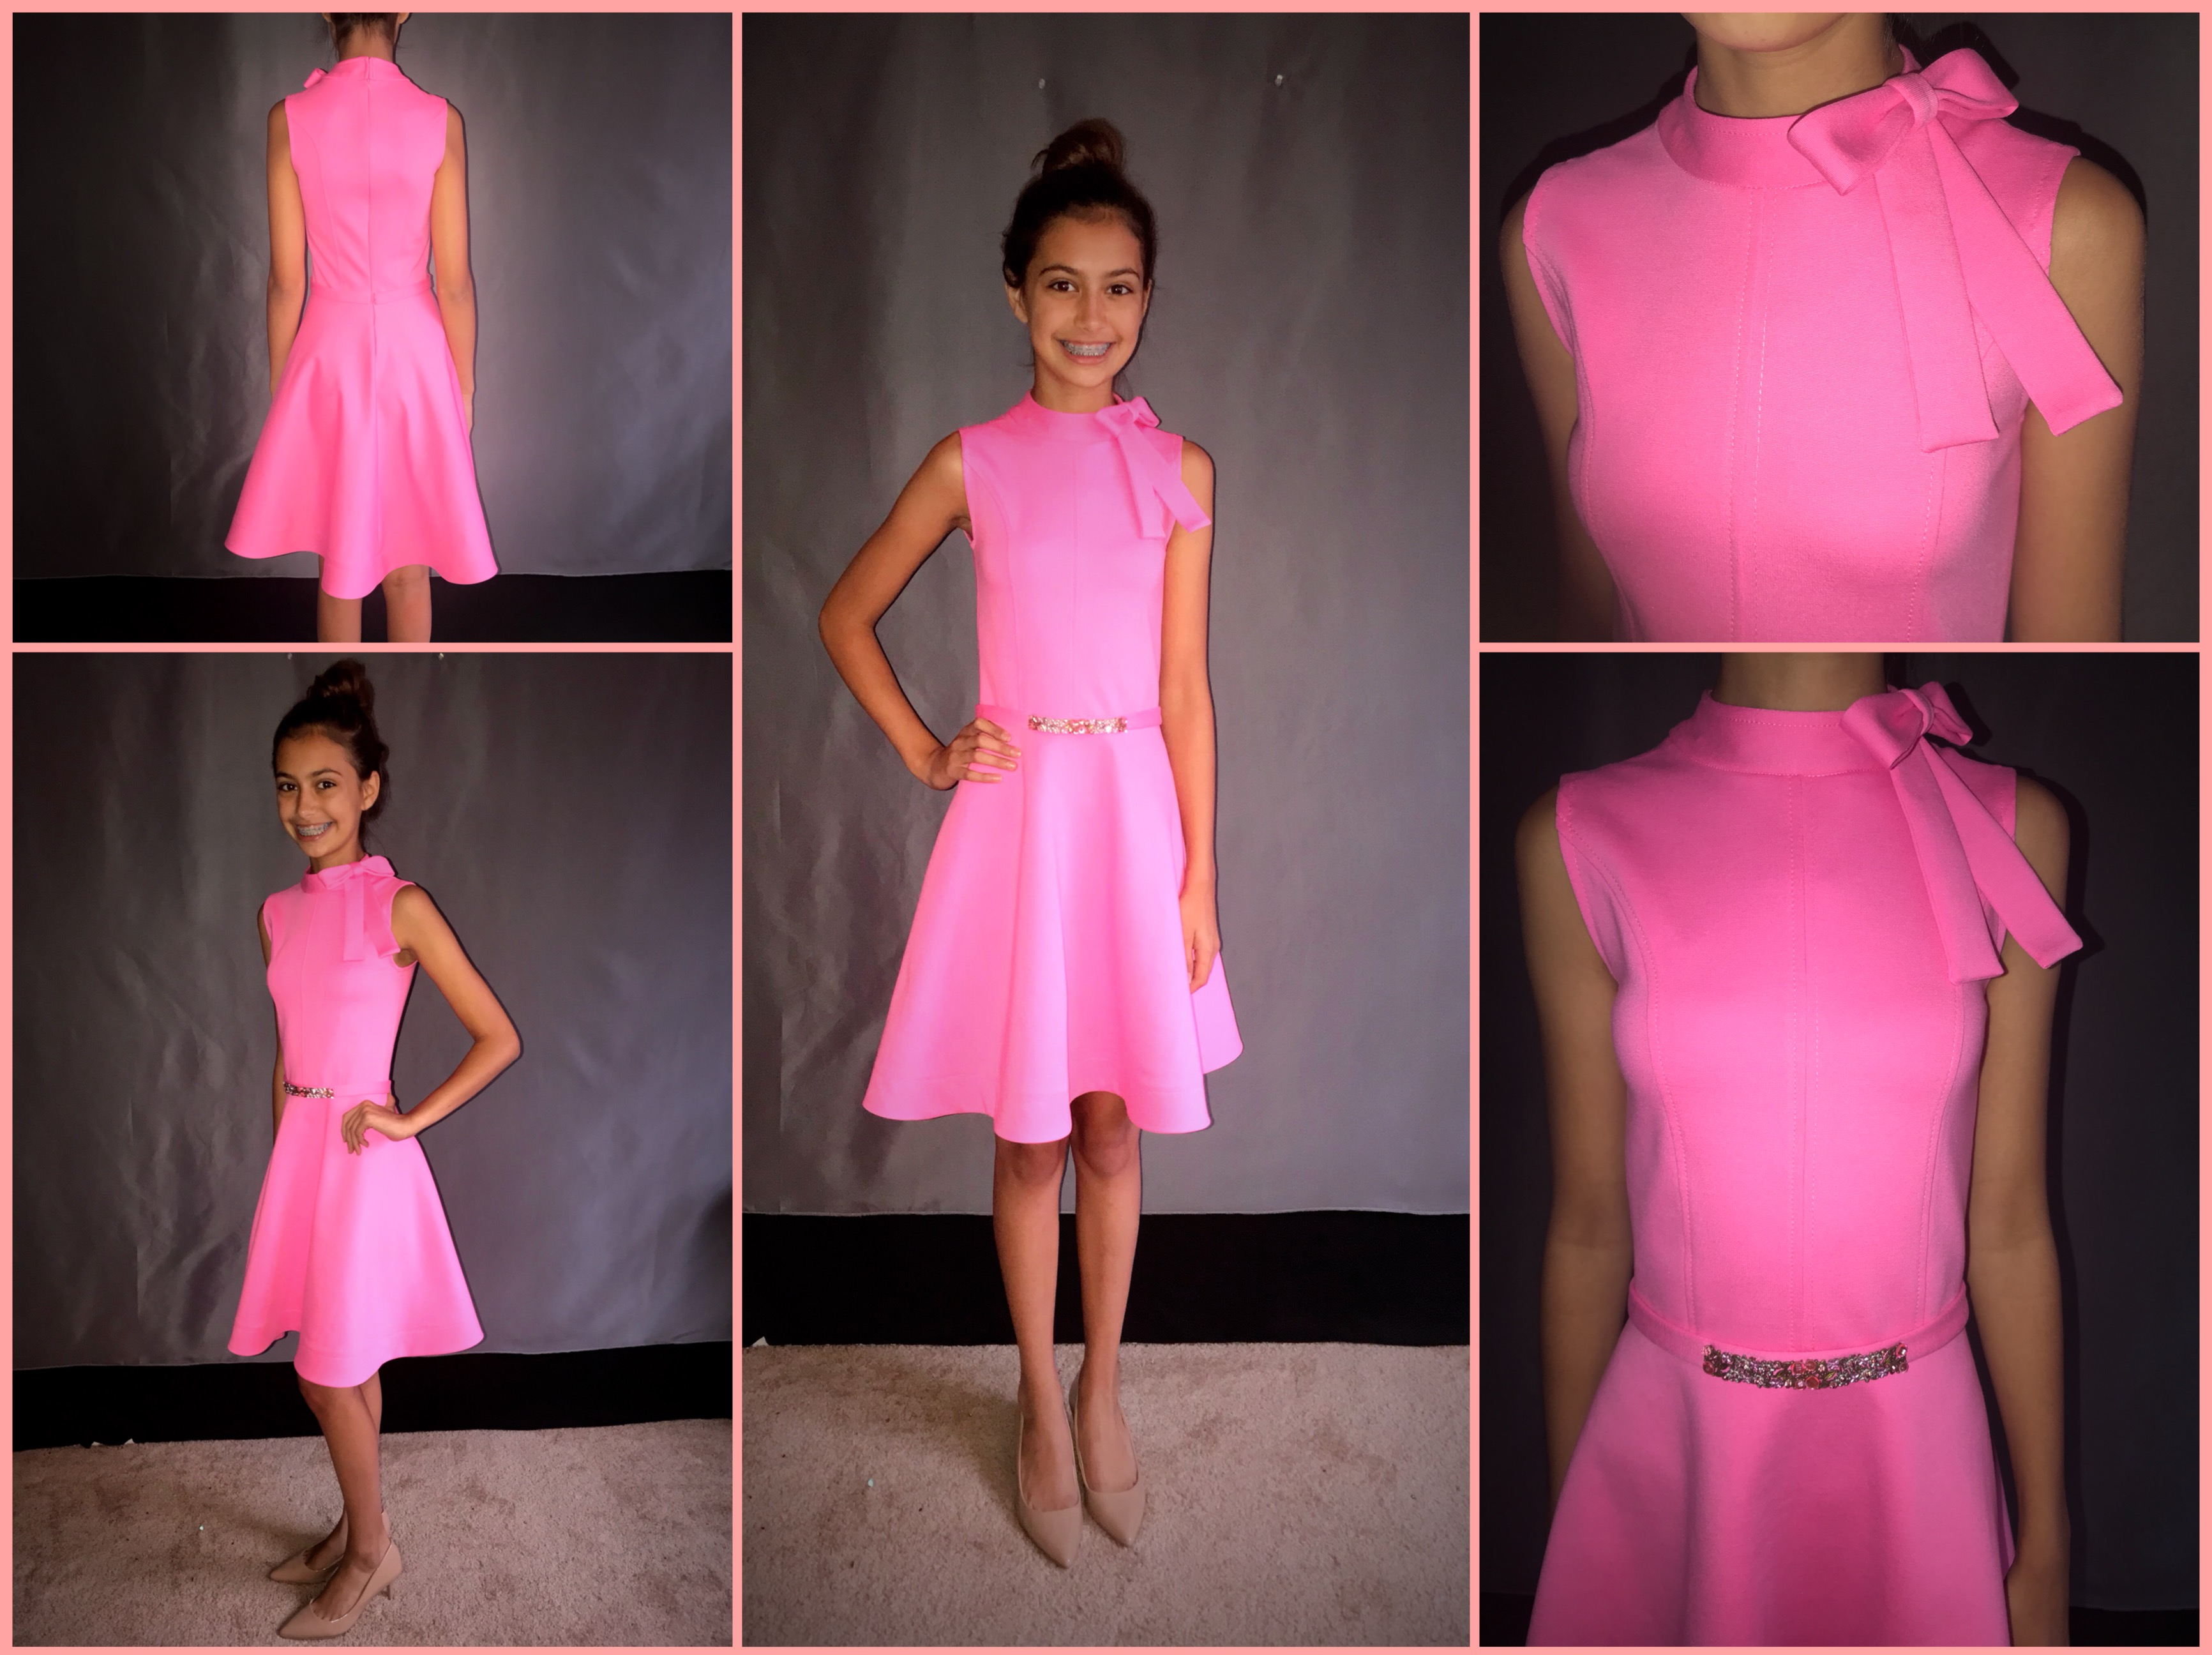 custom made pageant dress by seamstress Lena